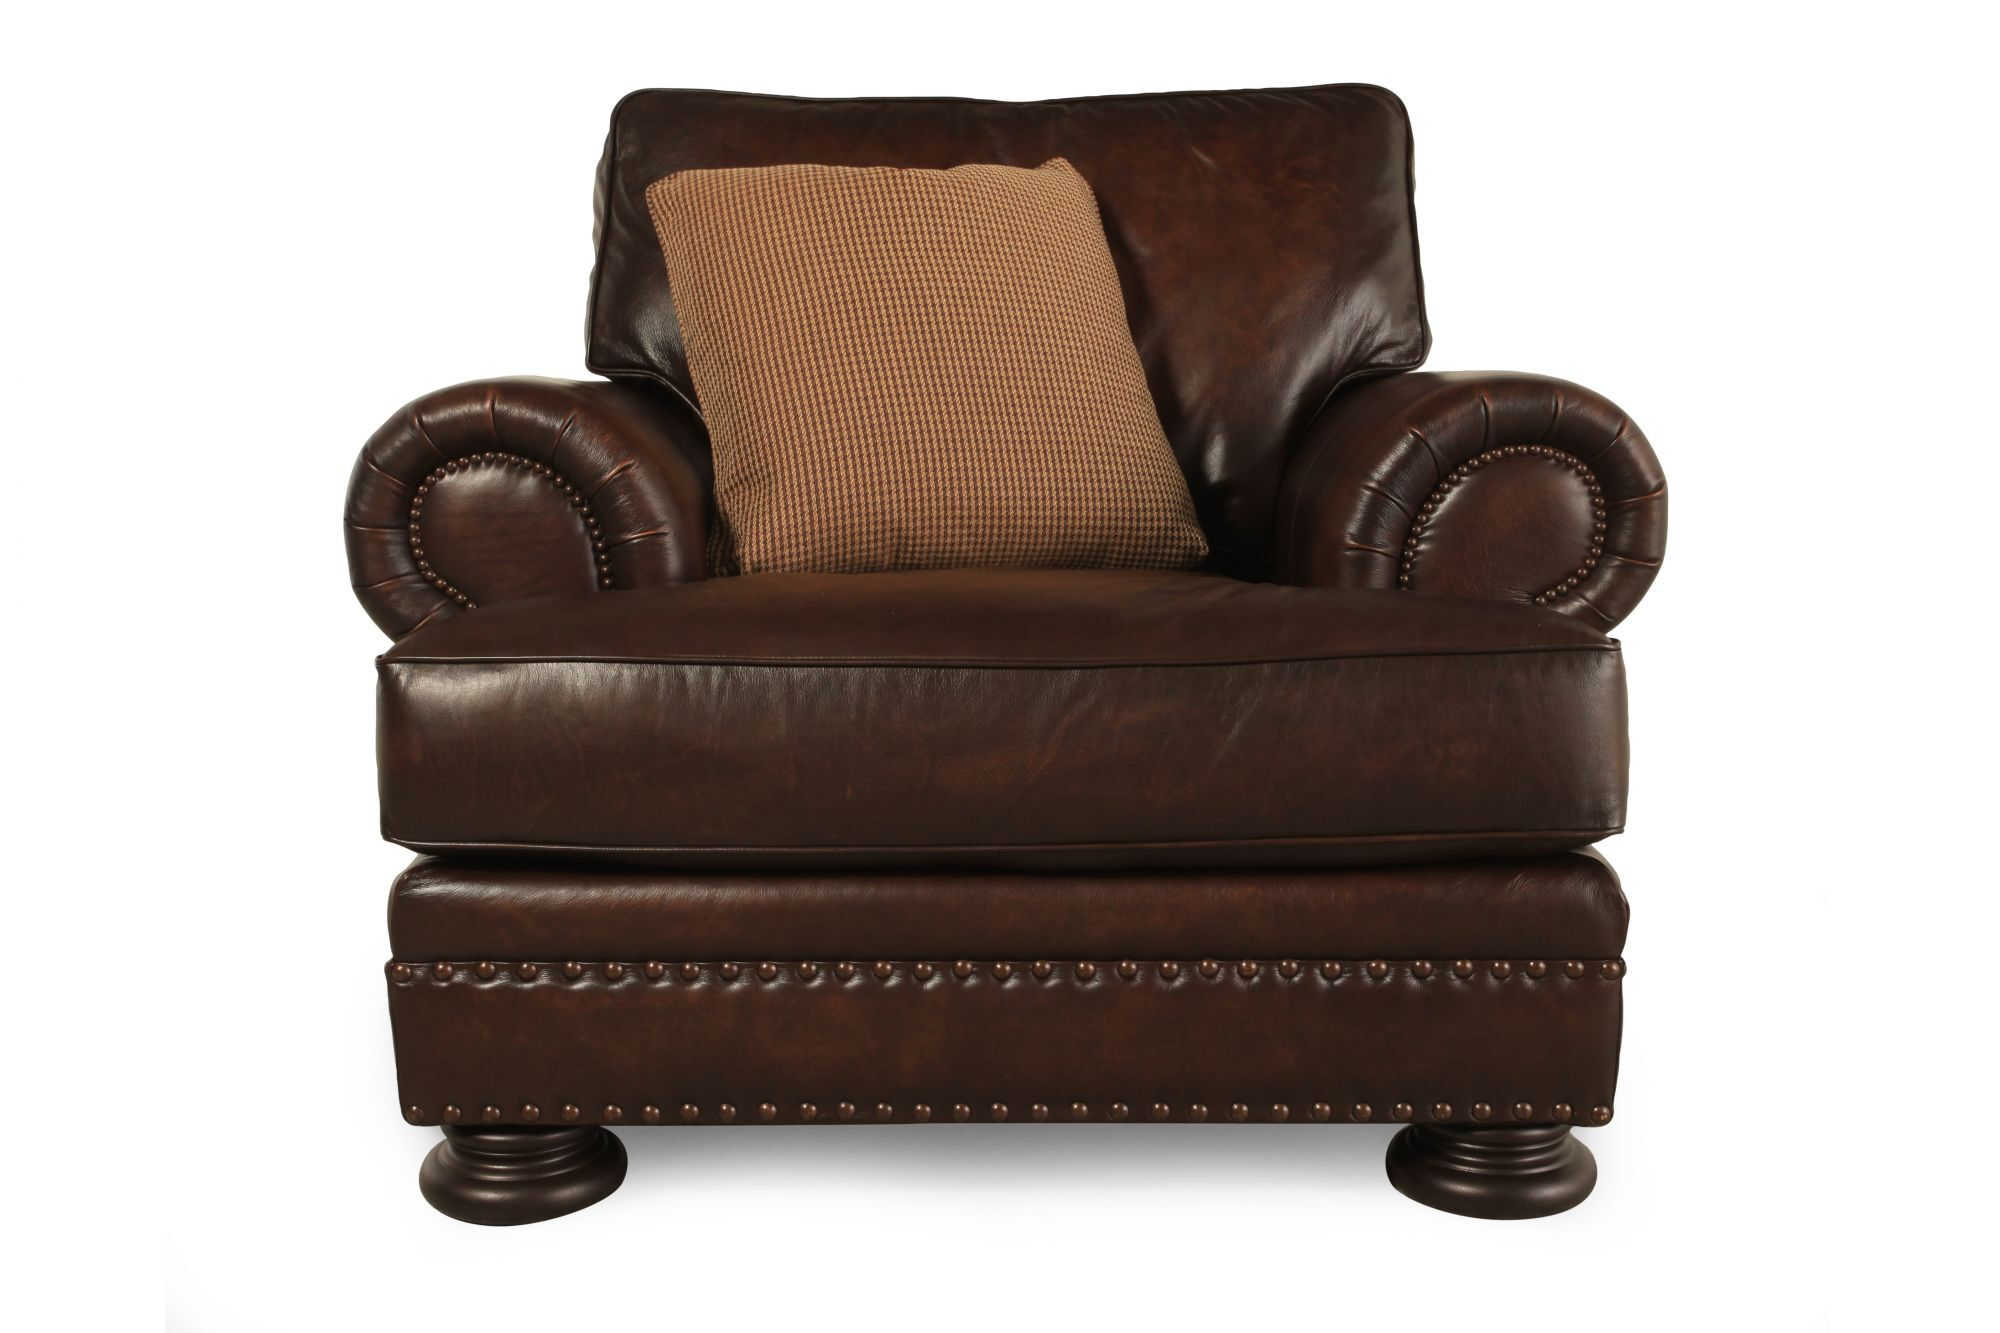 Bernhardt Foster Leather Chair  Mathis Brothers Furniture